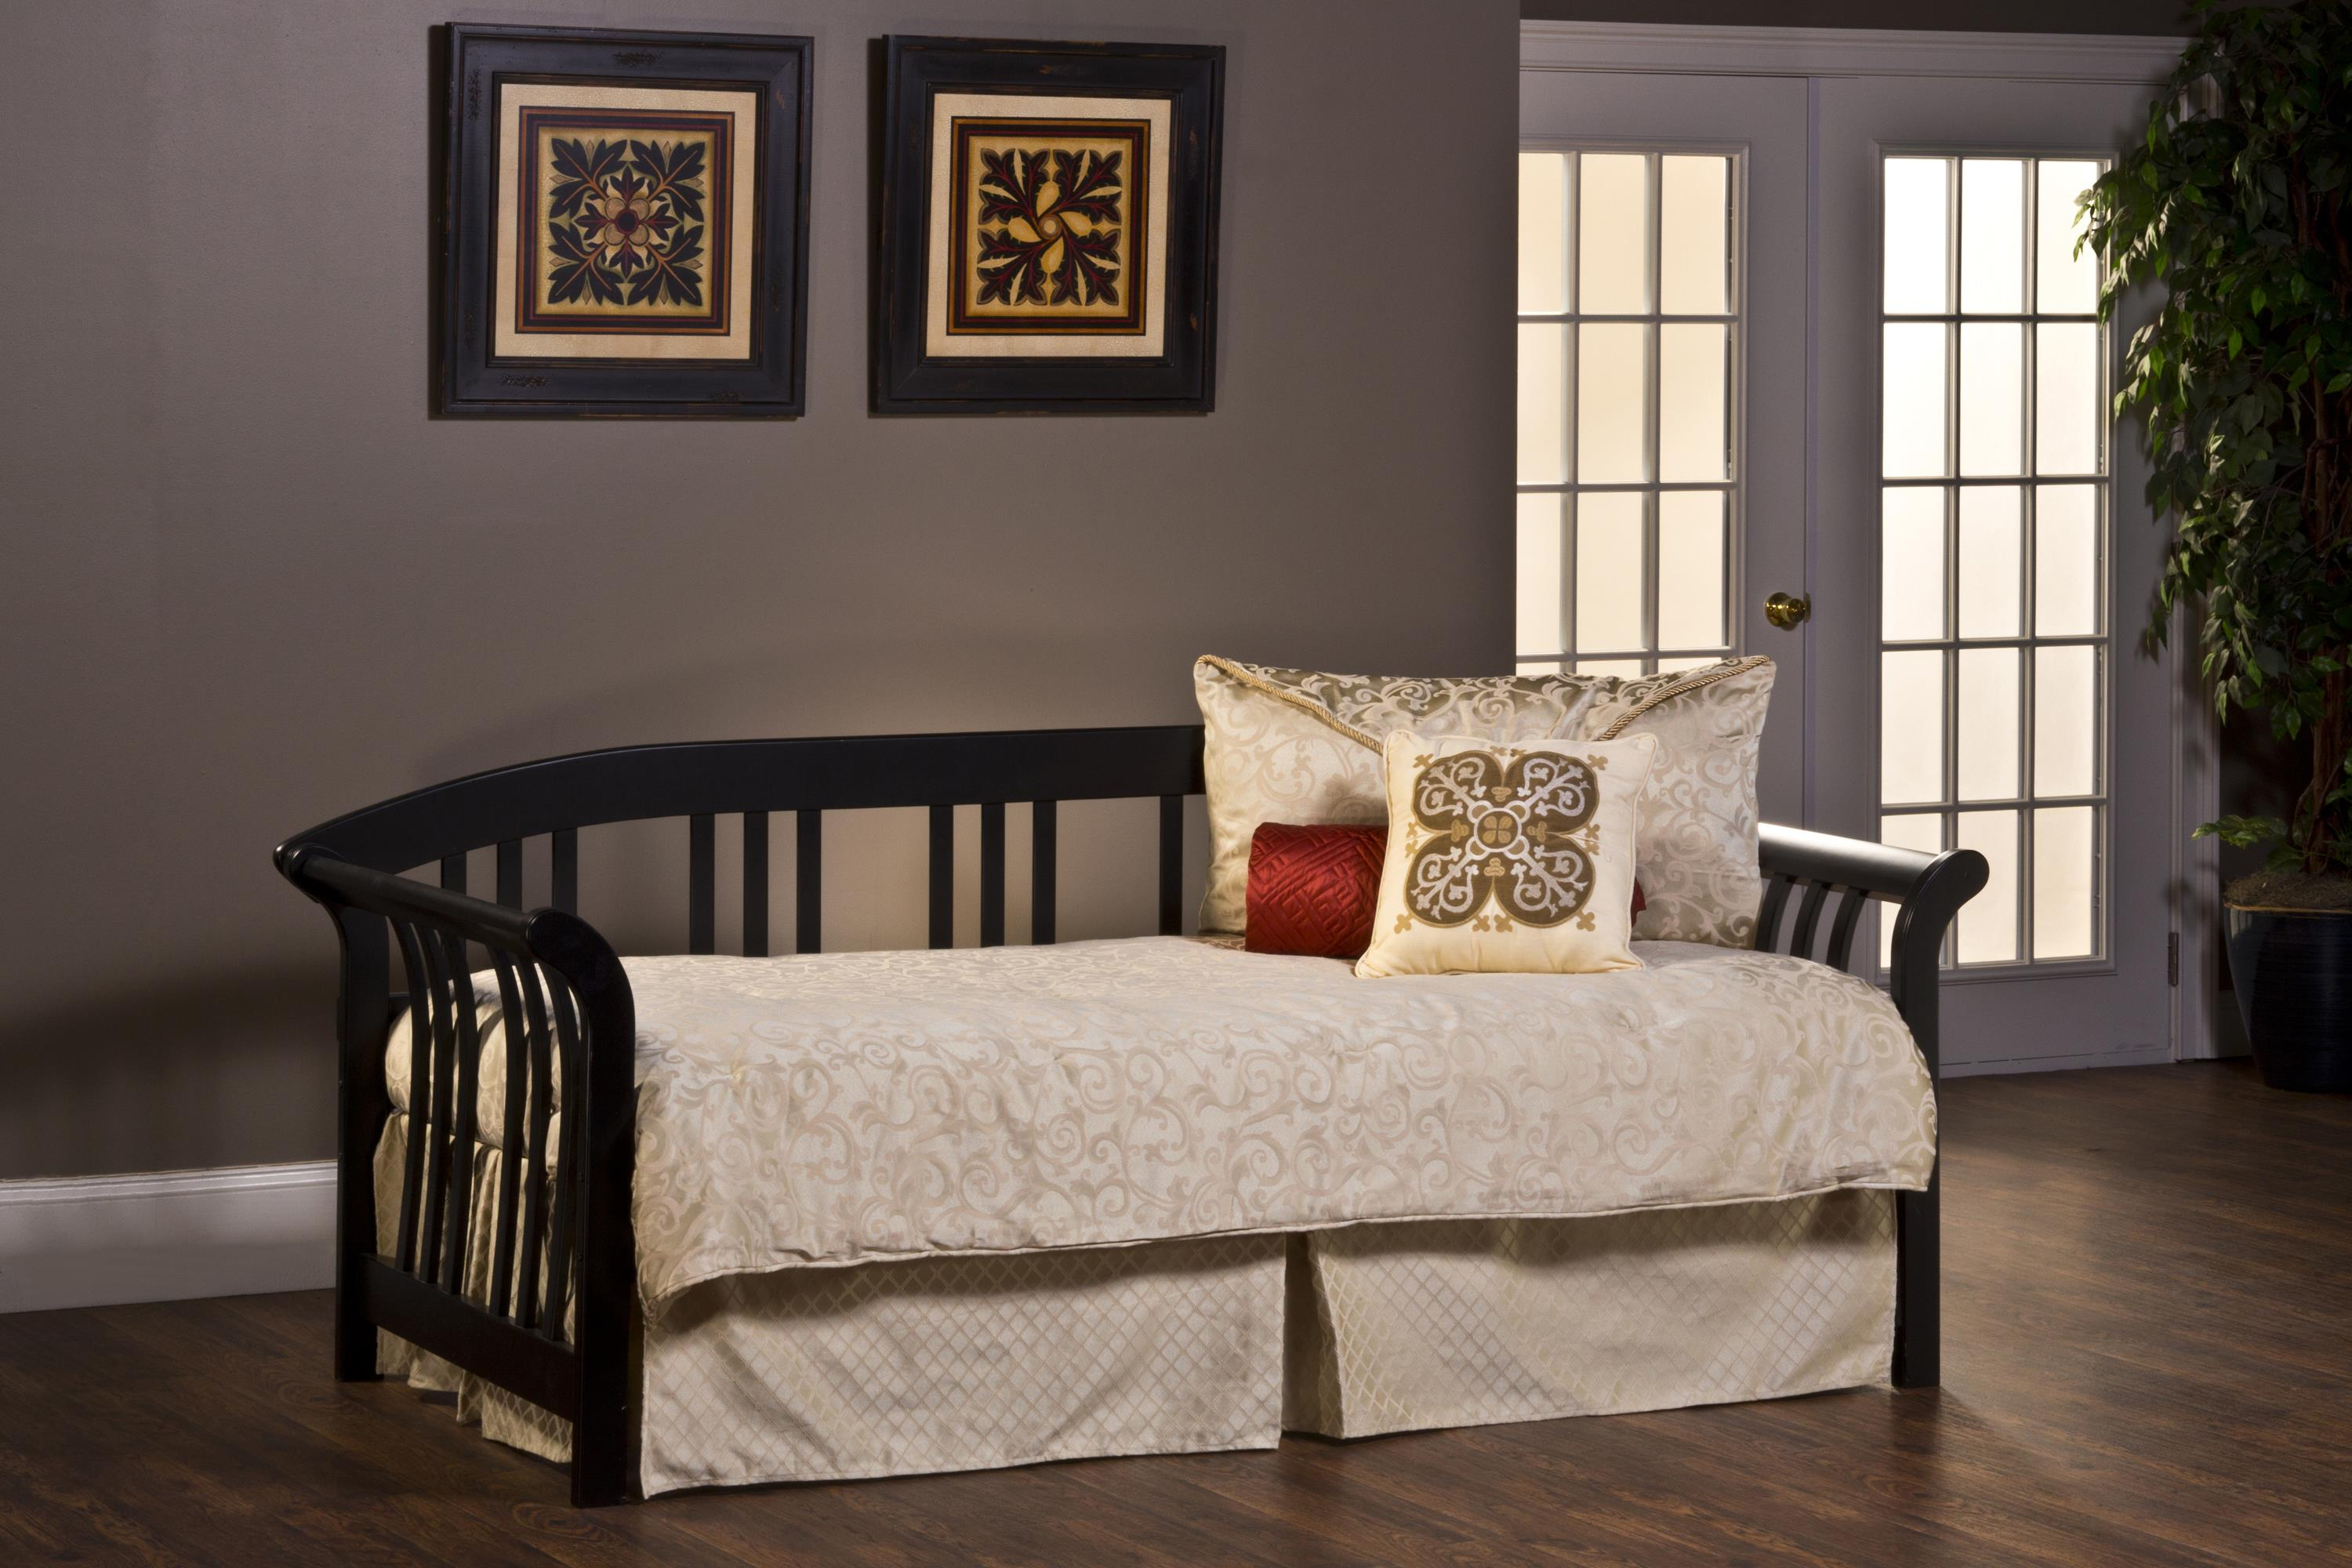 Hillsdale Daybeds Twin Dorchester Daybed - Item Number: 1046DBLH